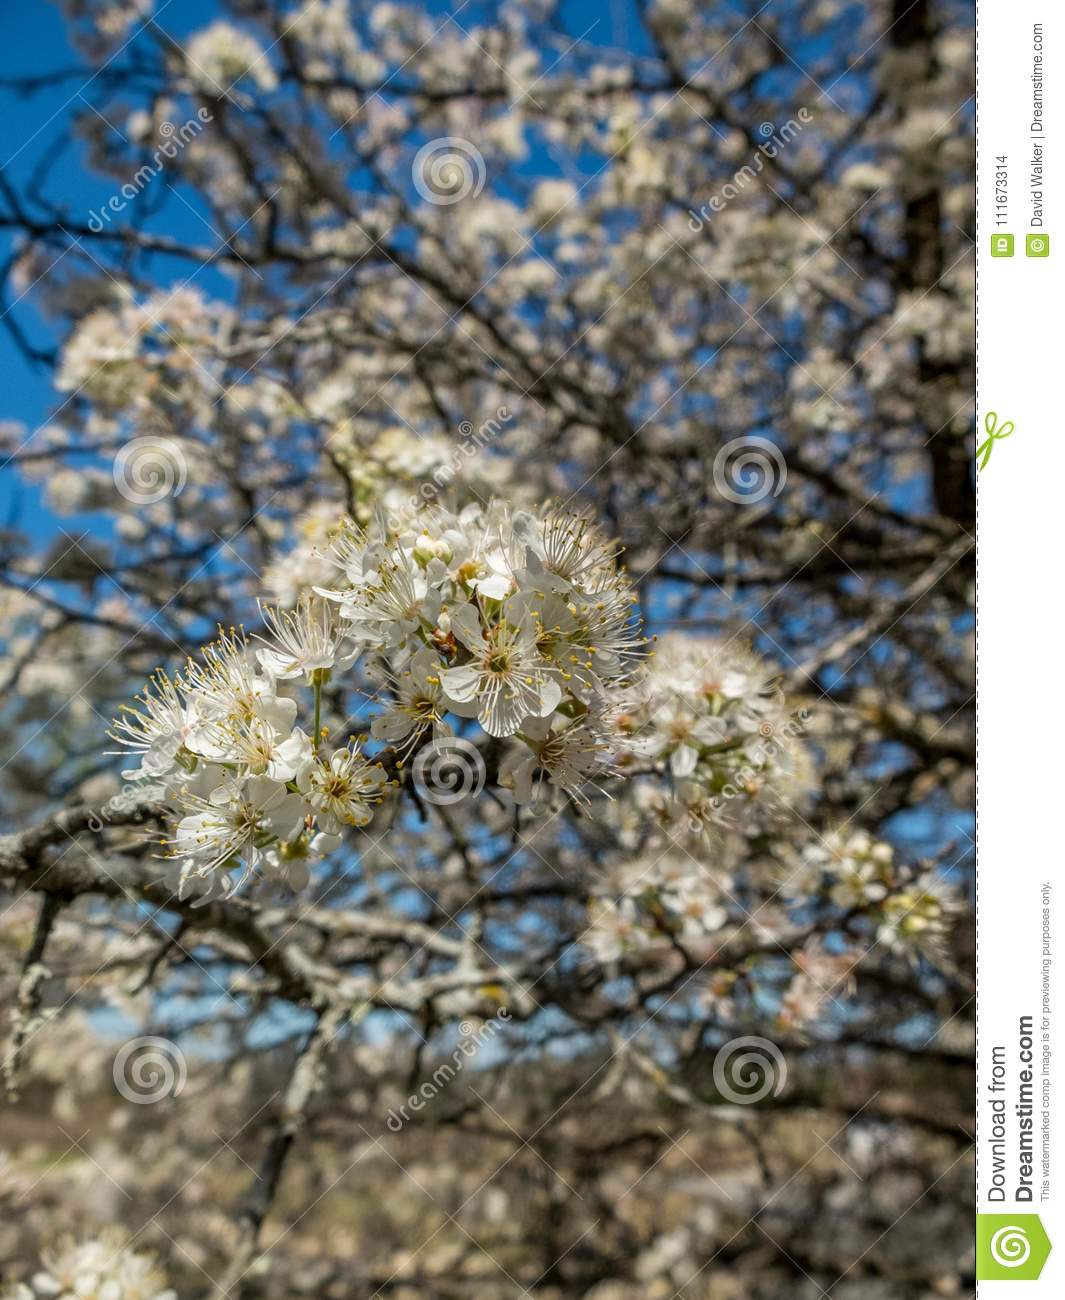 Flowering tree in spring stock photo image of pomiculture 111673314 a tree with small white blossoms in texas in the spring mightylinksfo